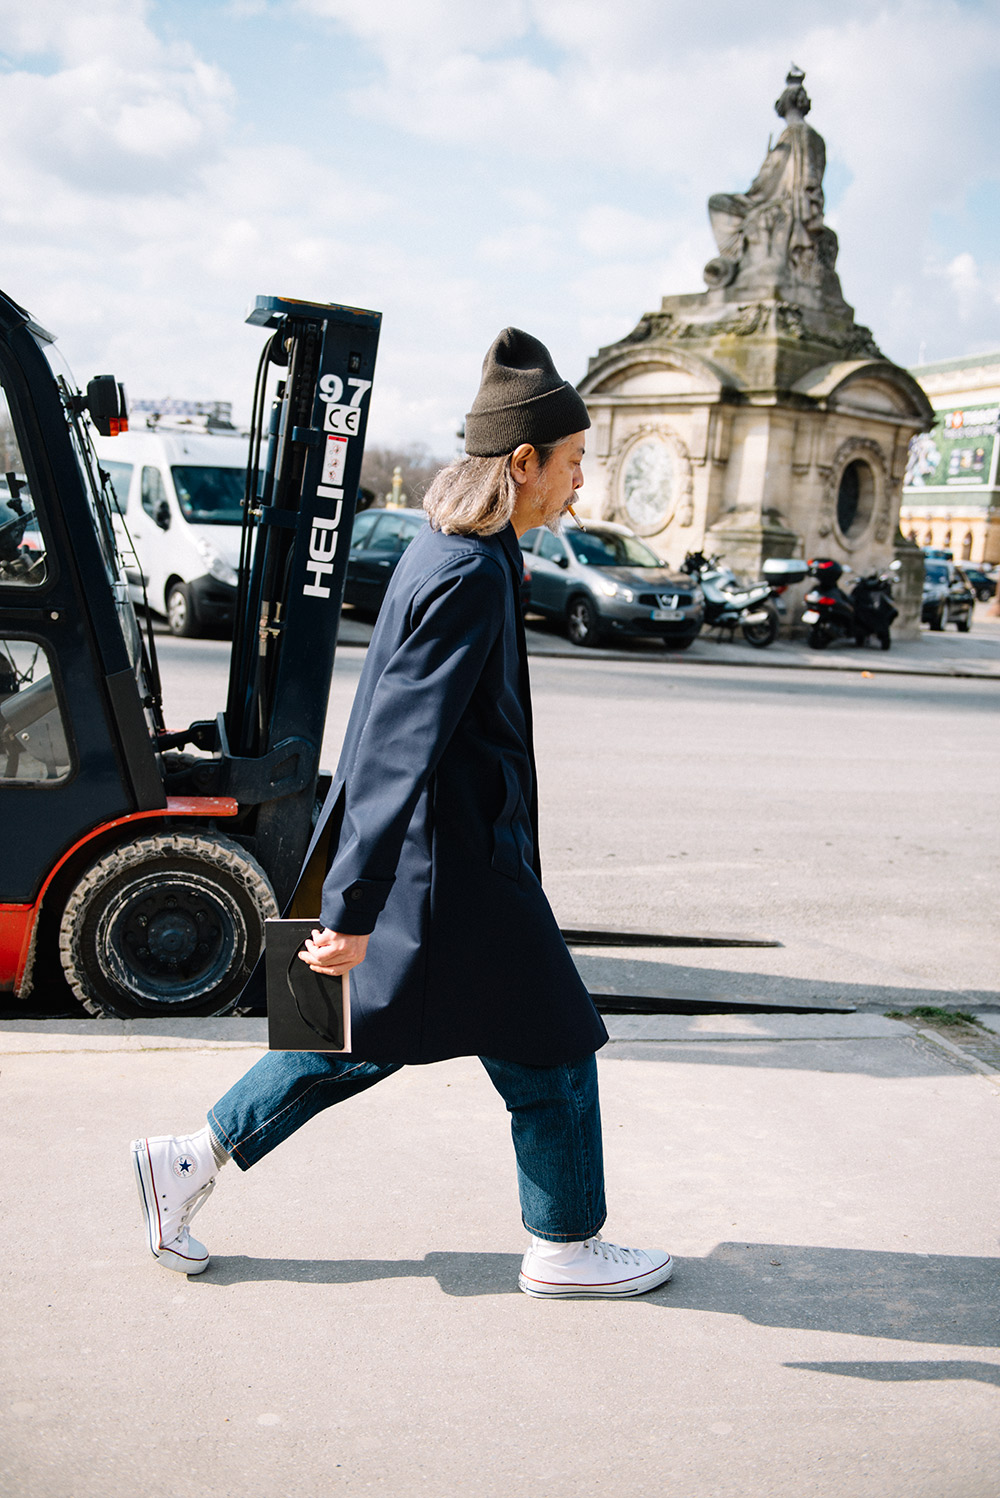 Paris Fashion Week Streetstyle by The Petticoat -Shunichi Mugita Carhartt Beanie and COnverse Shoes after Valentino Show Paris PFW